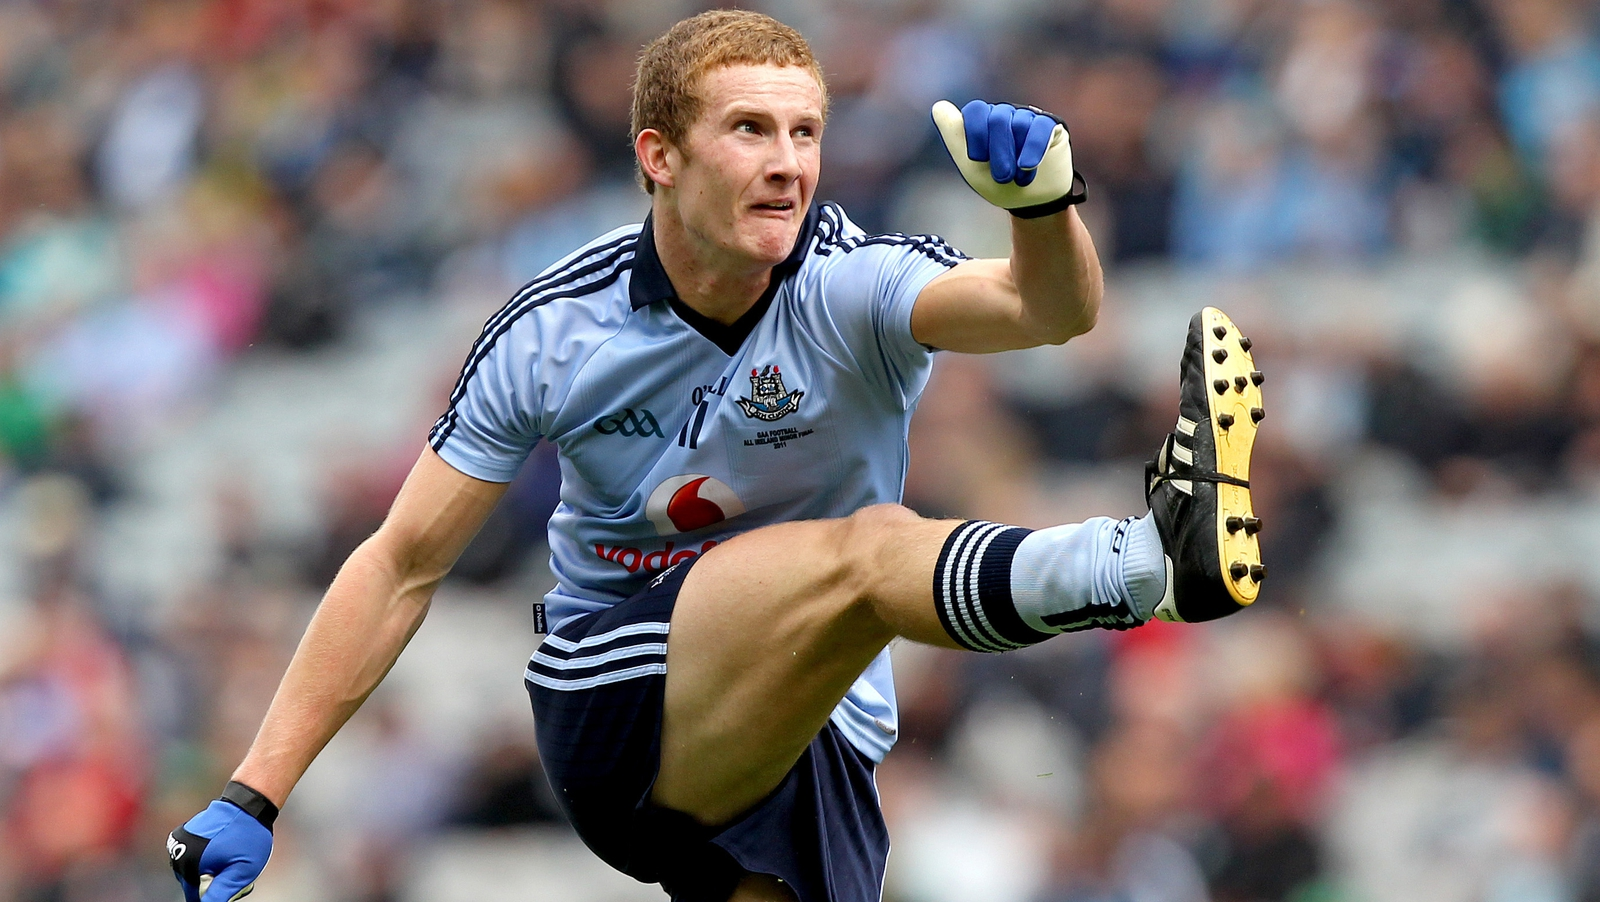 Image - Ciarán Kilkenny was the top scorer in the 2011 minor football championship with 0-39